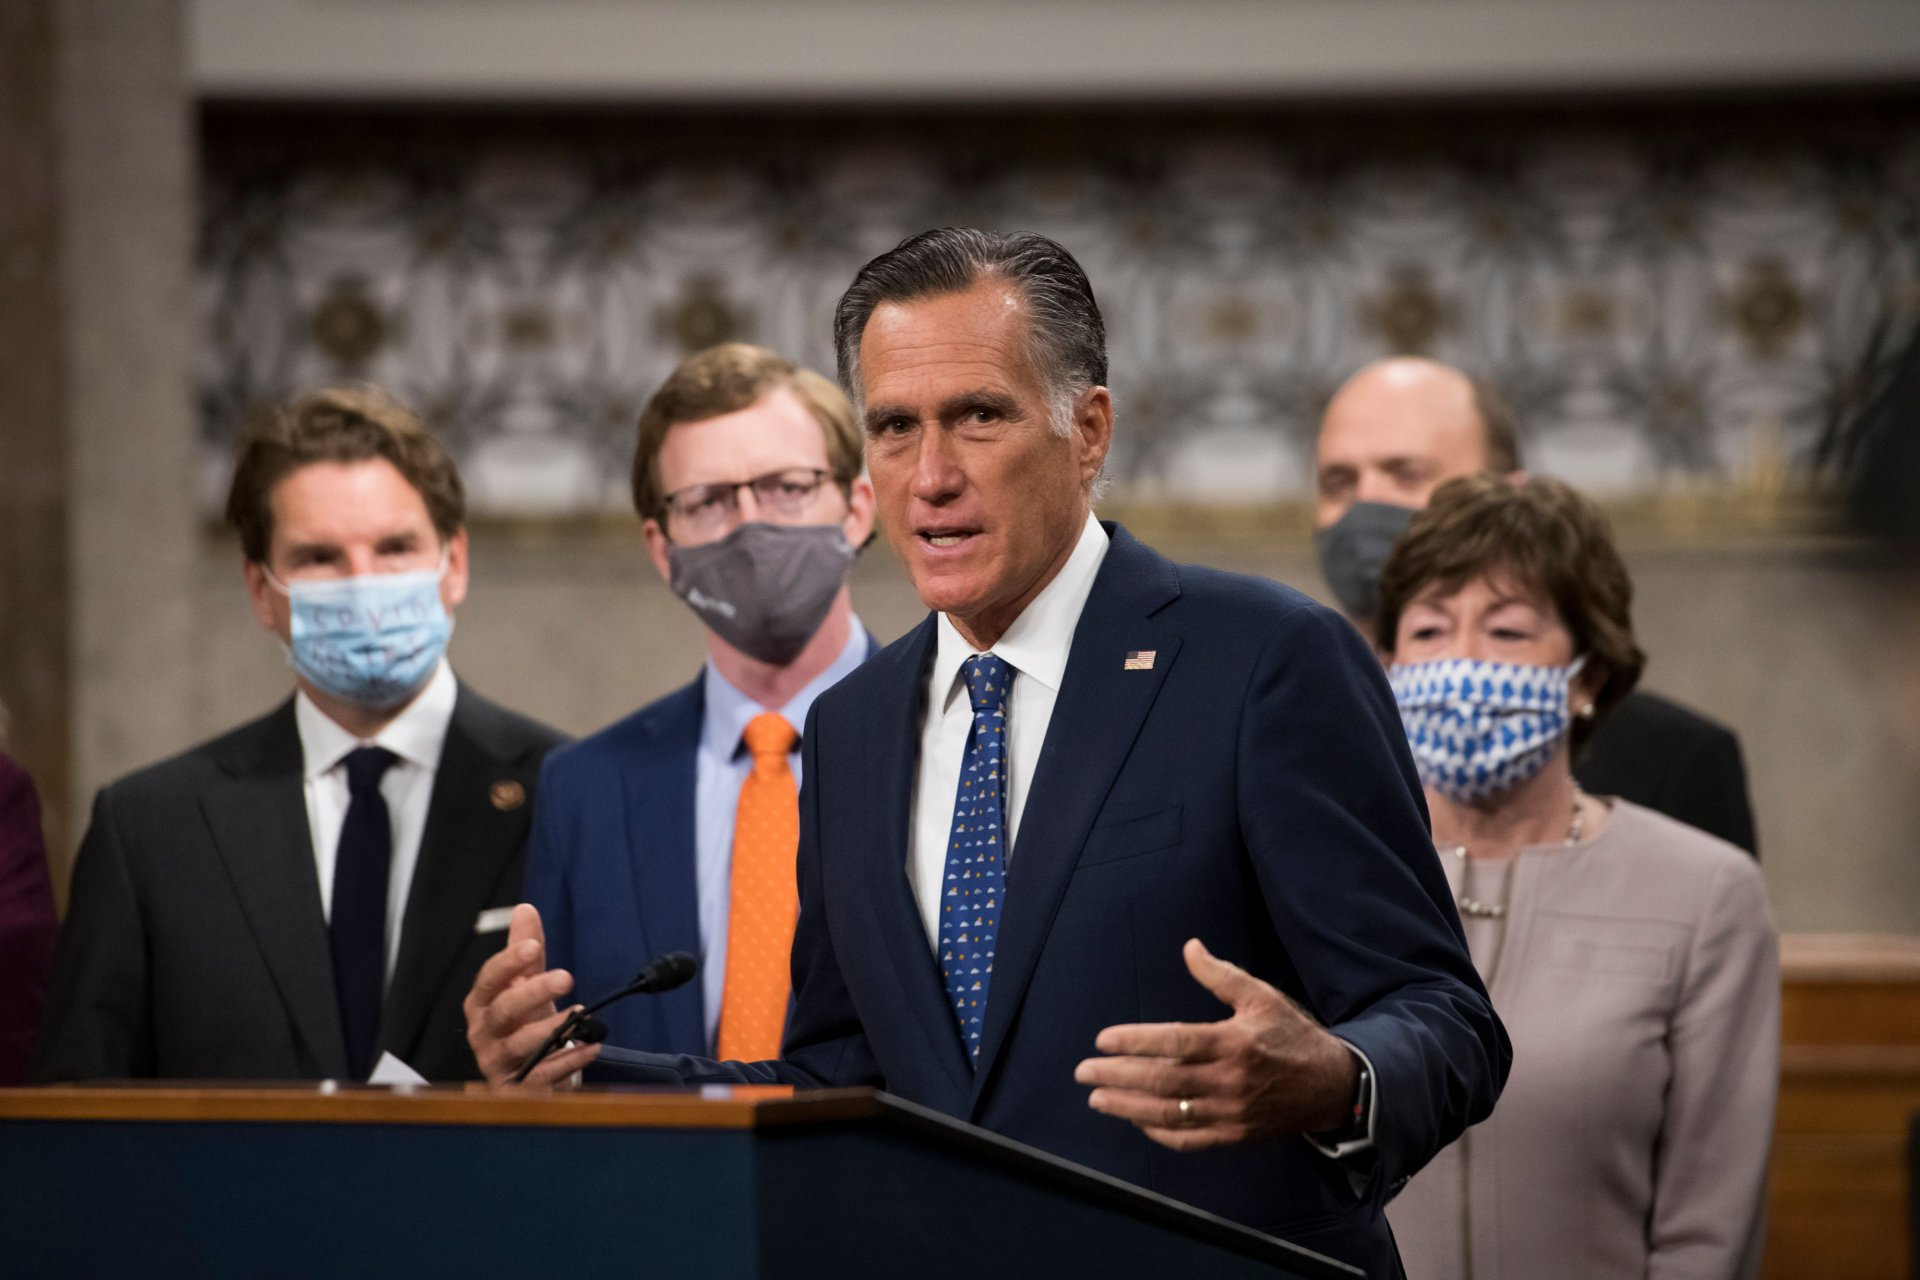 Mandatory Credit: Photo by Shutterstock (11088535s)United States Senator Mitt Romney (Republican of Utah) speaks at a Capitol Hill press conference in Washington, DC announcing a bipartisan $908 billion COVID emergency relief framework that is designed to break the partisan deadlock and bring economic relief to millions of Americans.